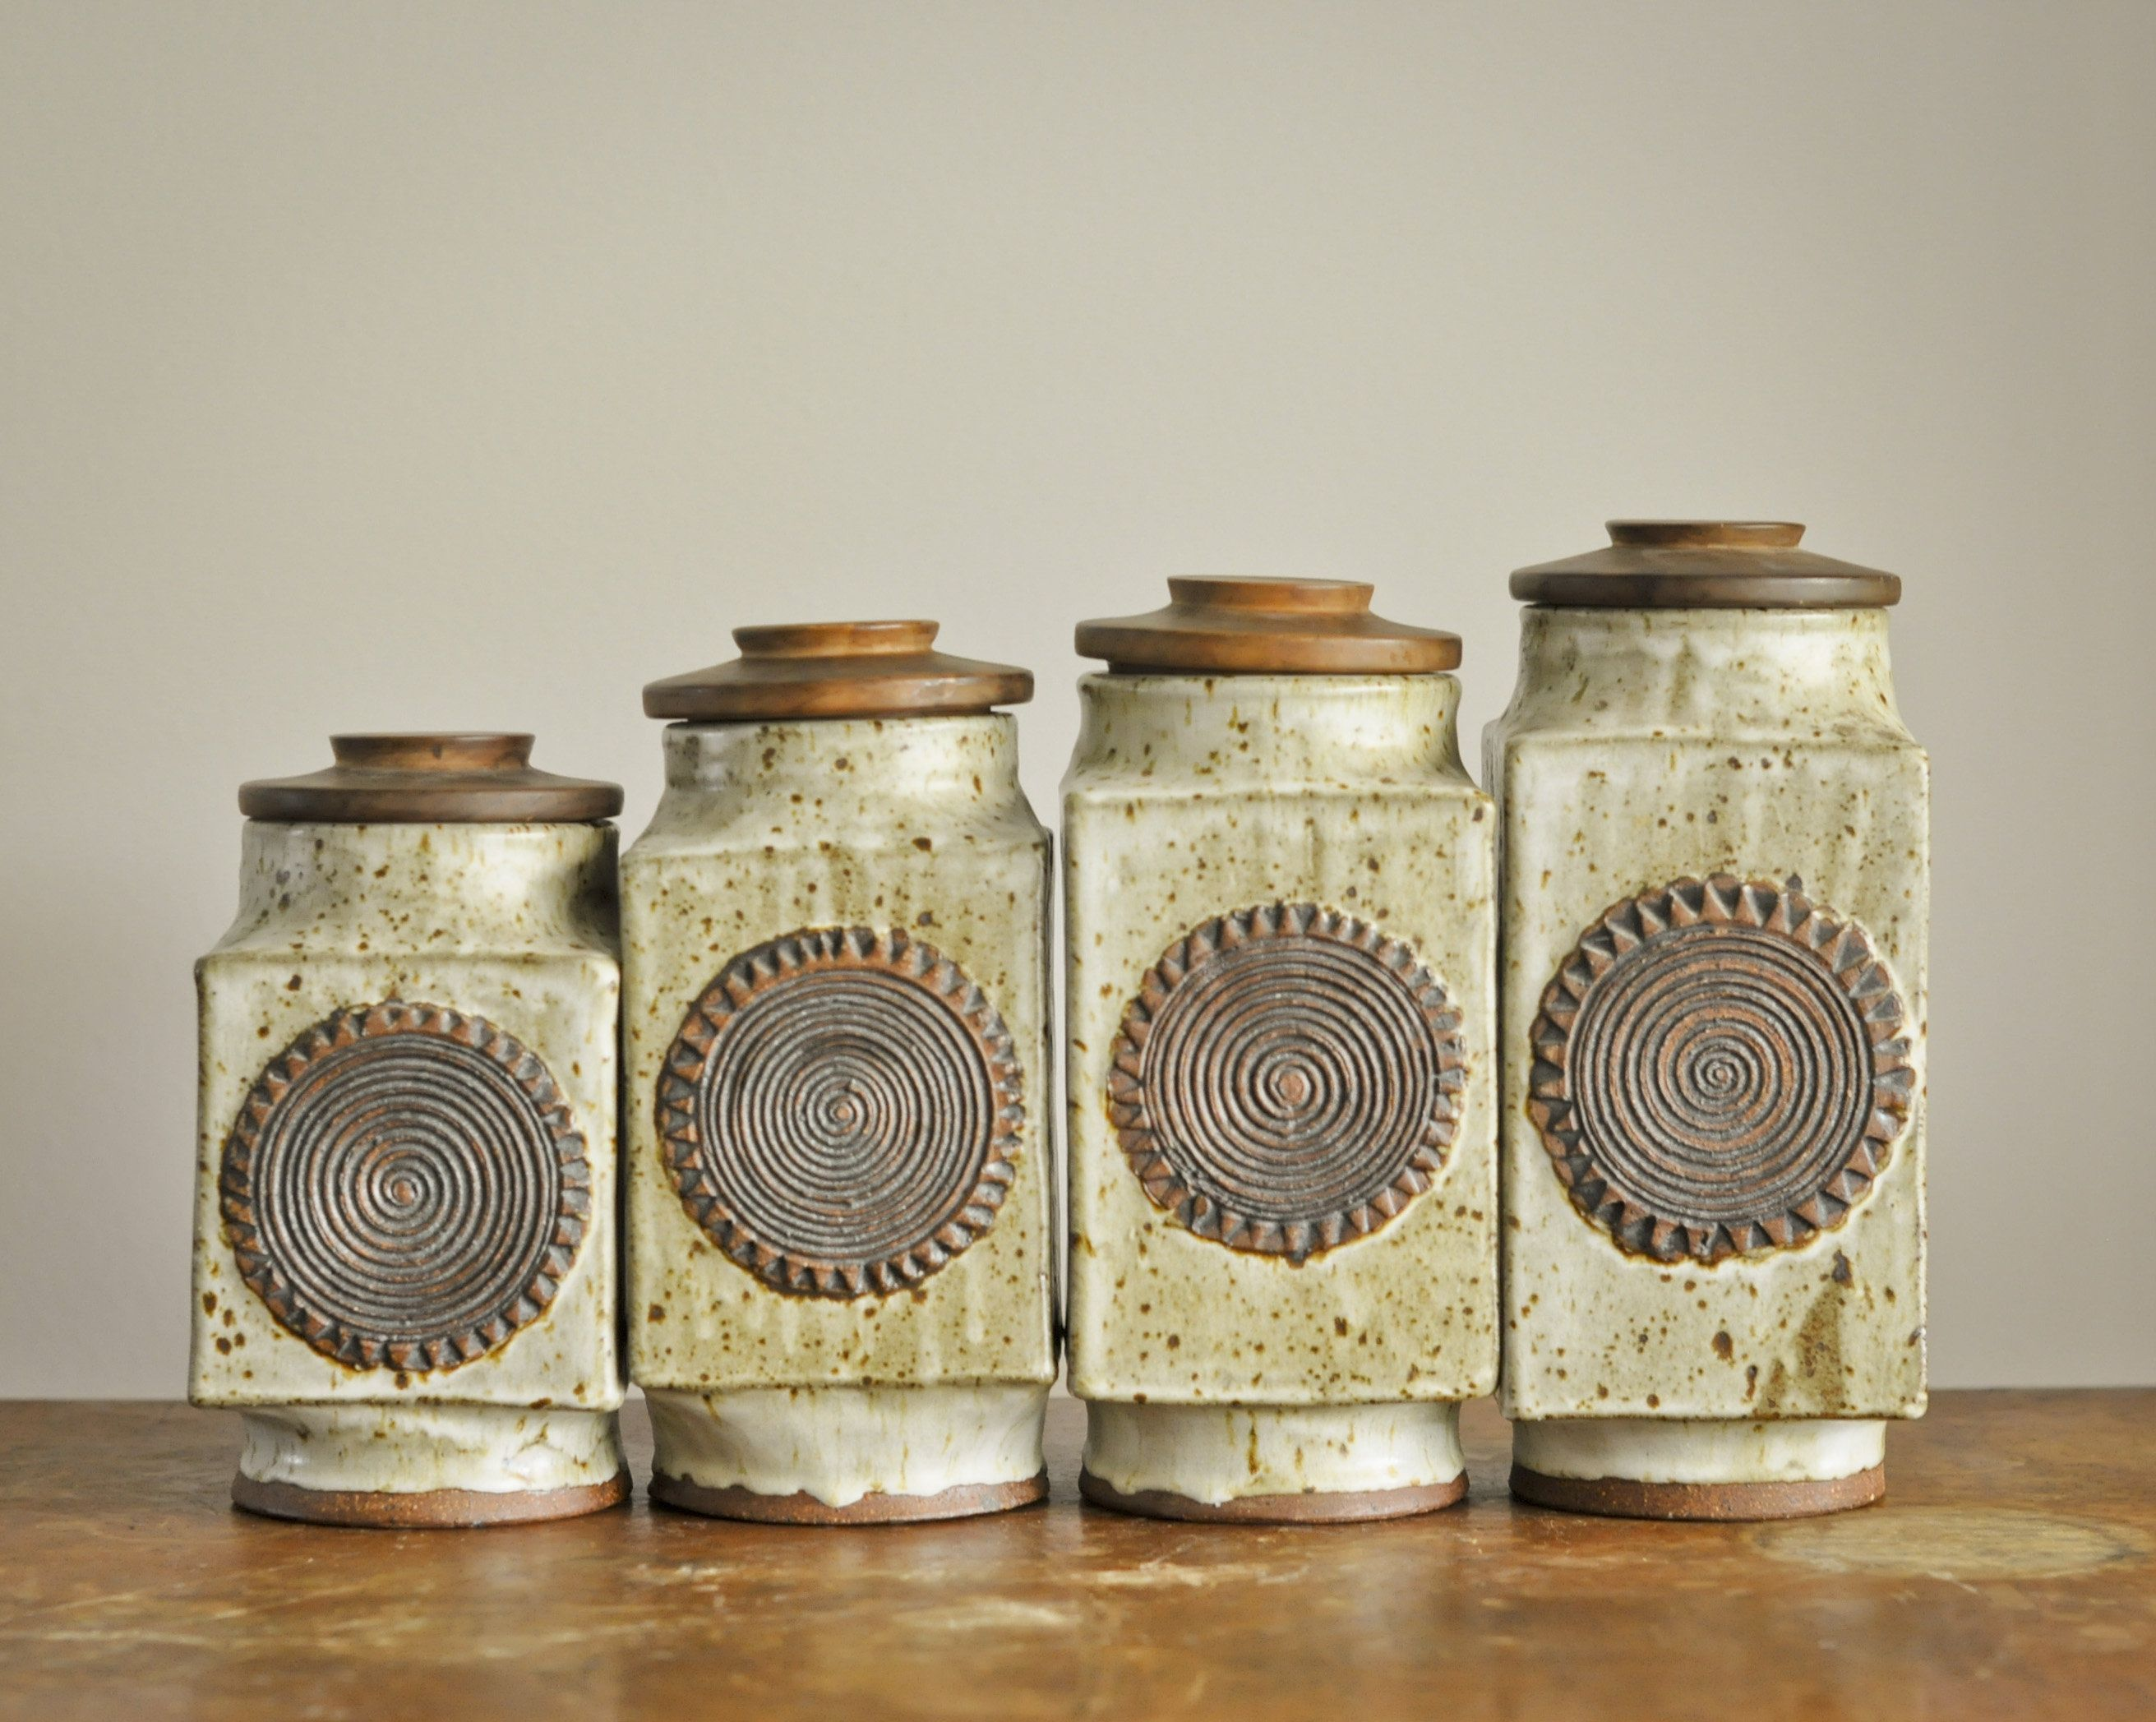 Amazing Vintage Kitchen Canister Set Handmade Studio Pottery